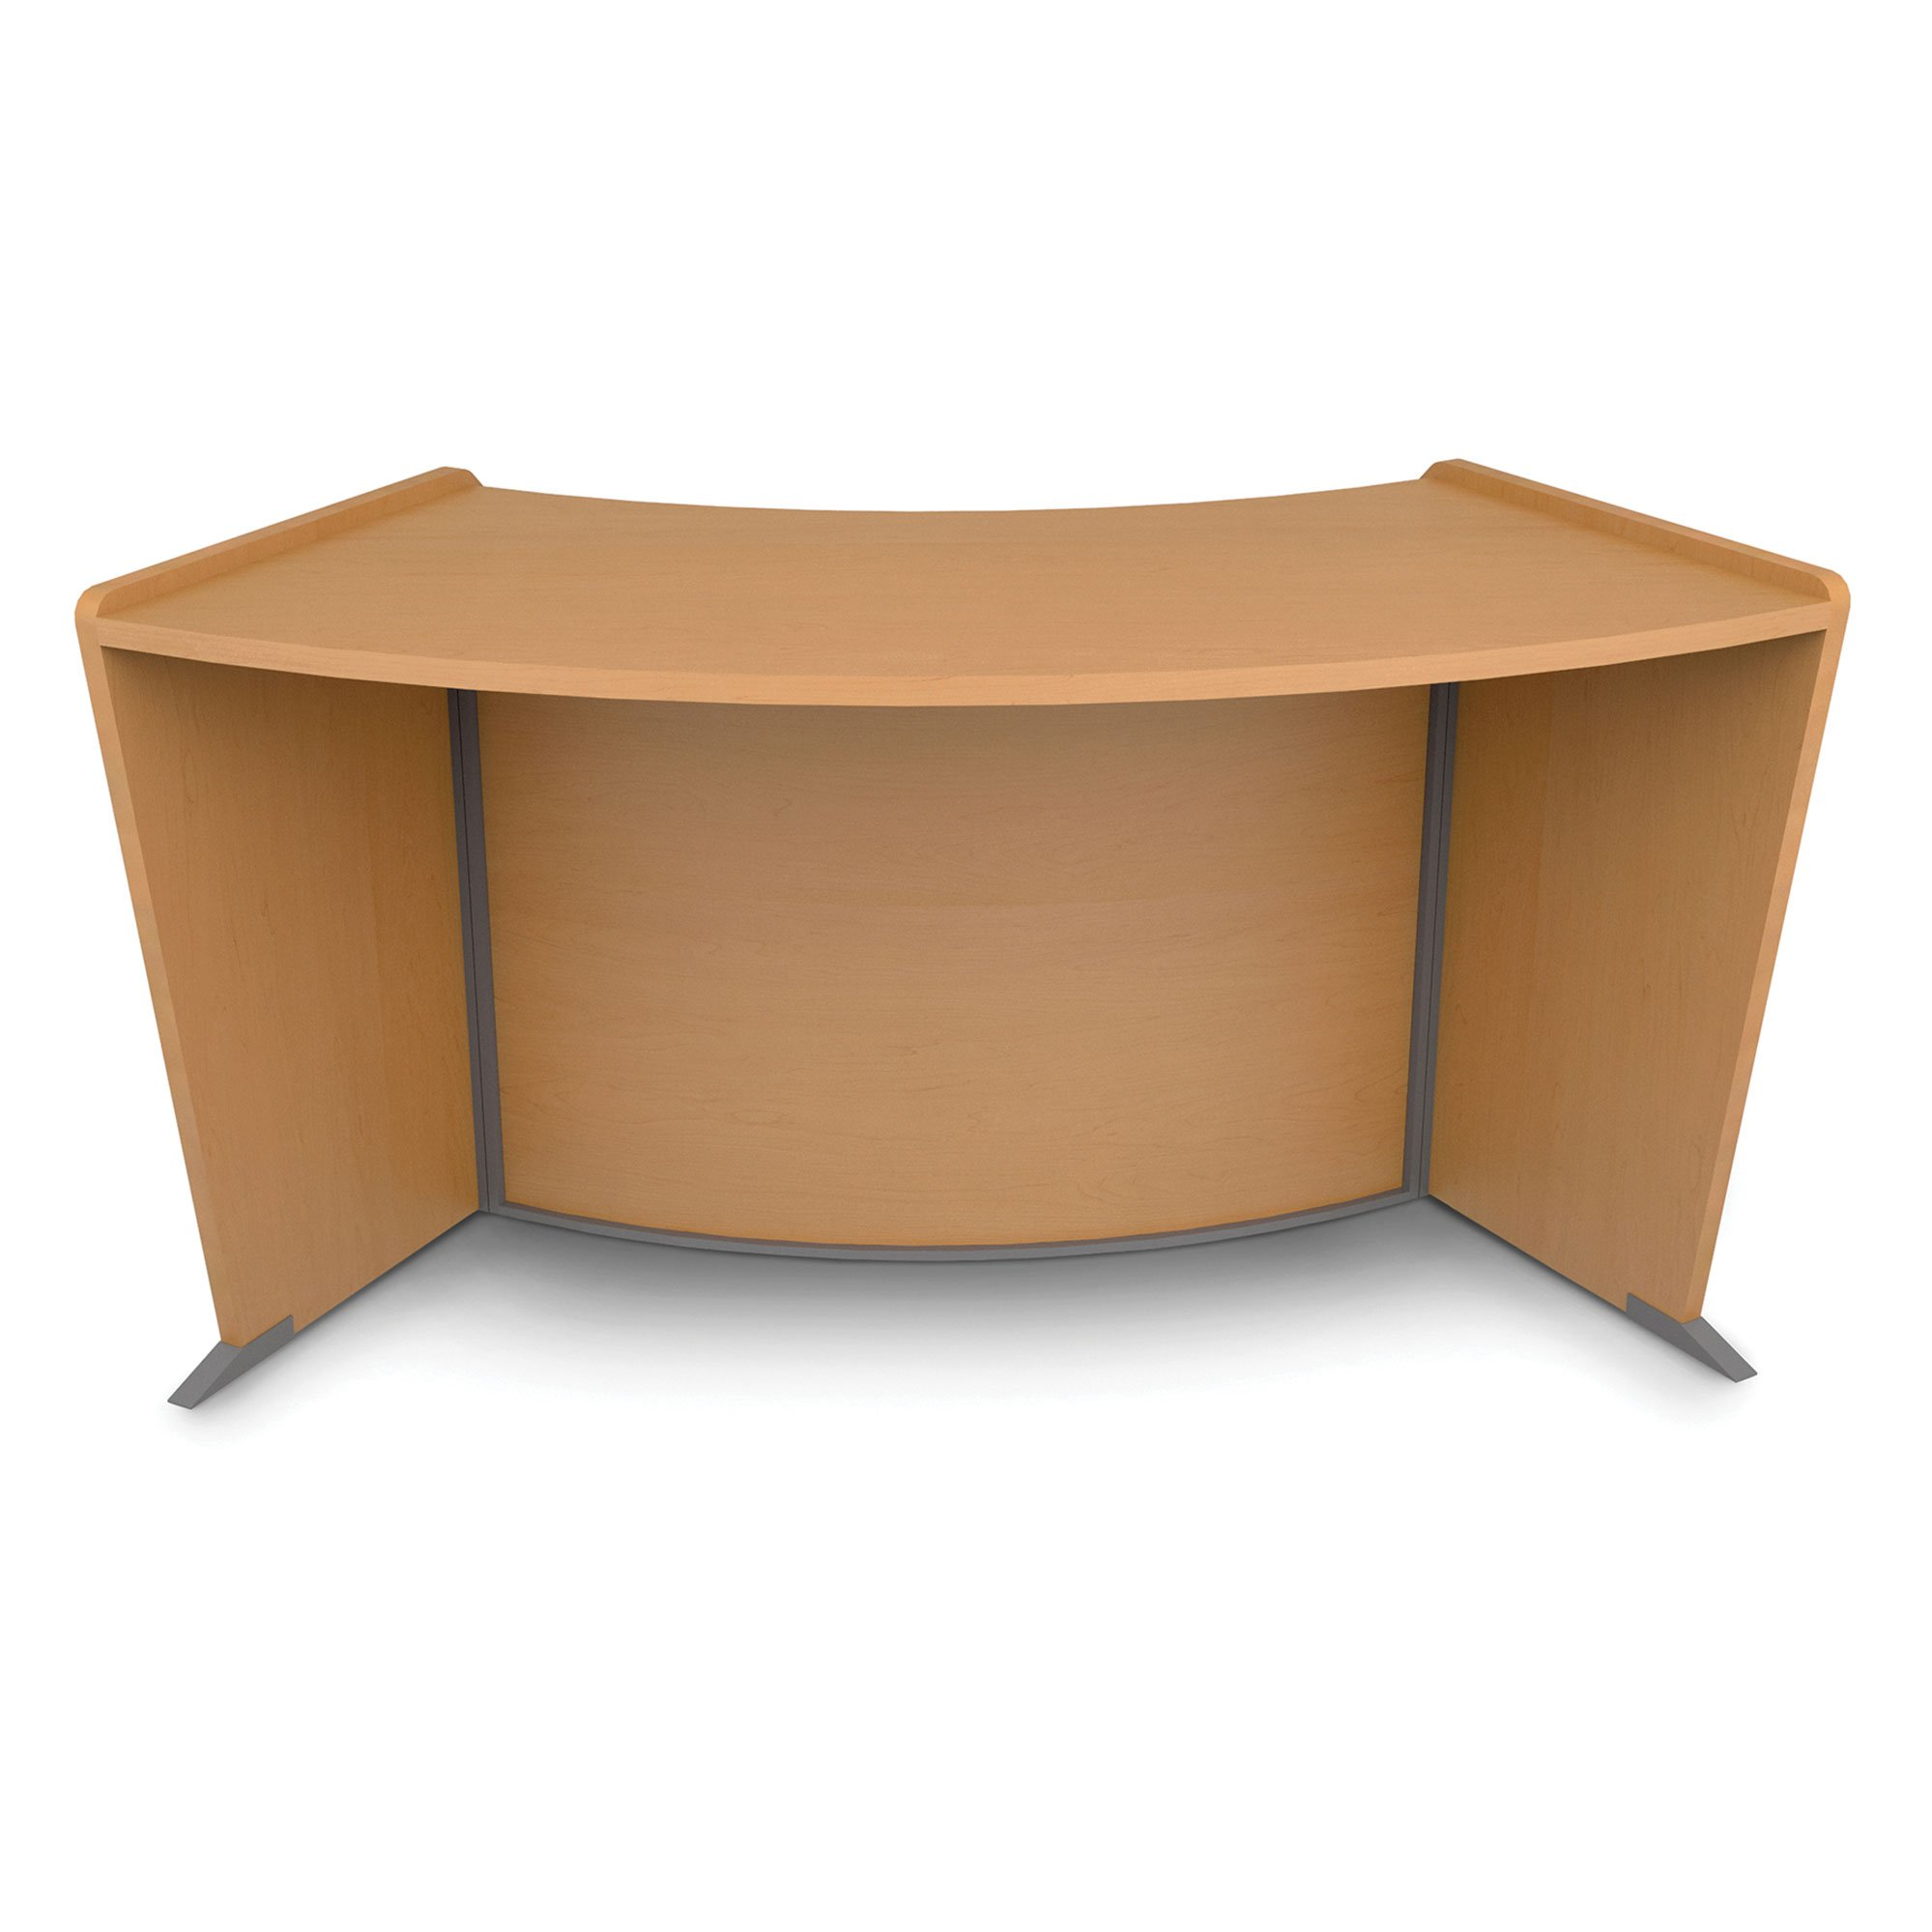 ADA/Wheelchair Access Reception Desk, Maple by OFM